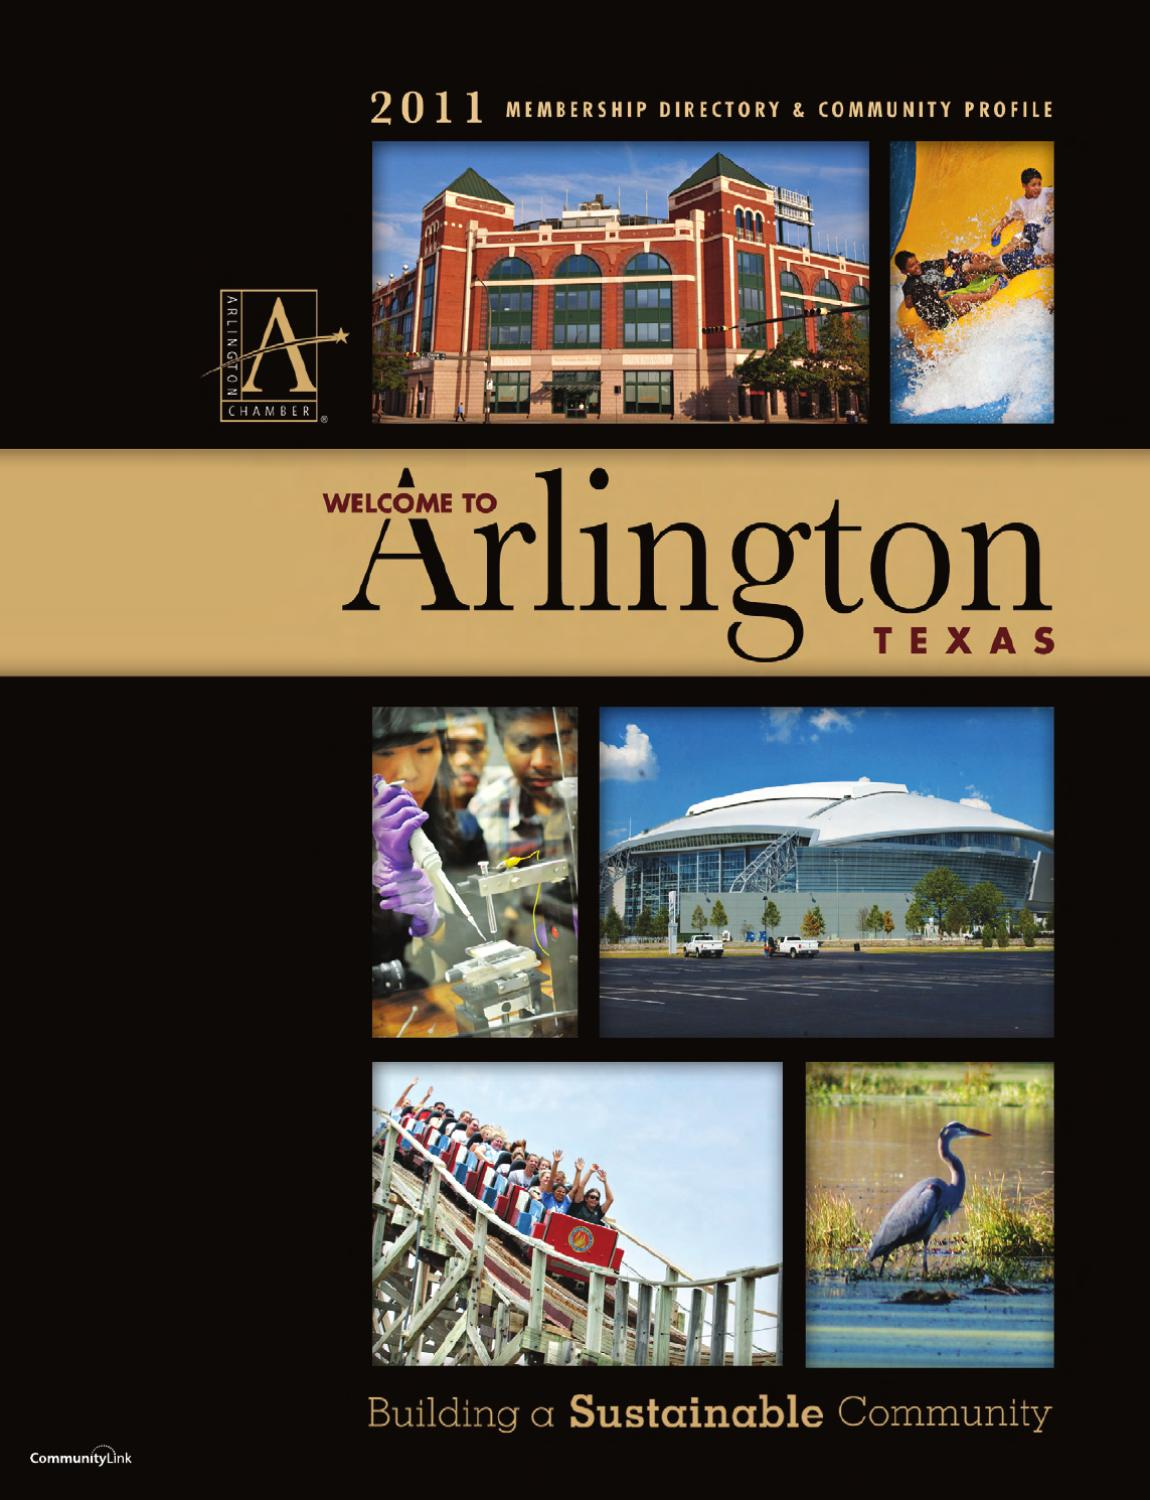 arlington tx membership directory and community profile by arlington tx 2011 membership directory and community profile